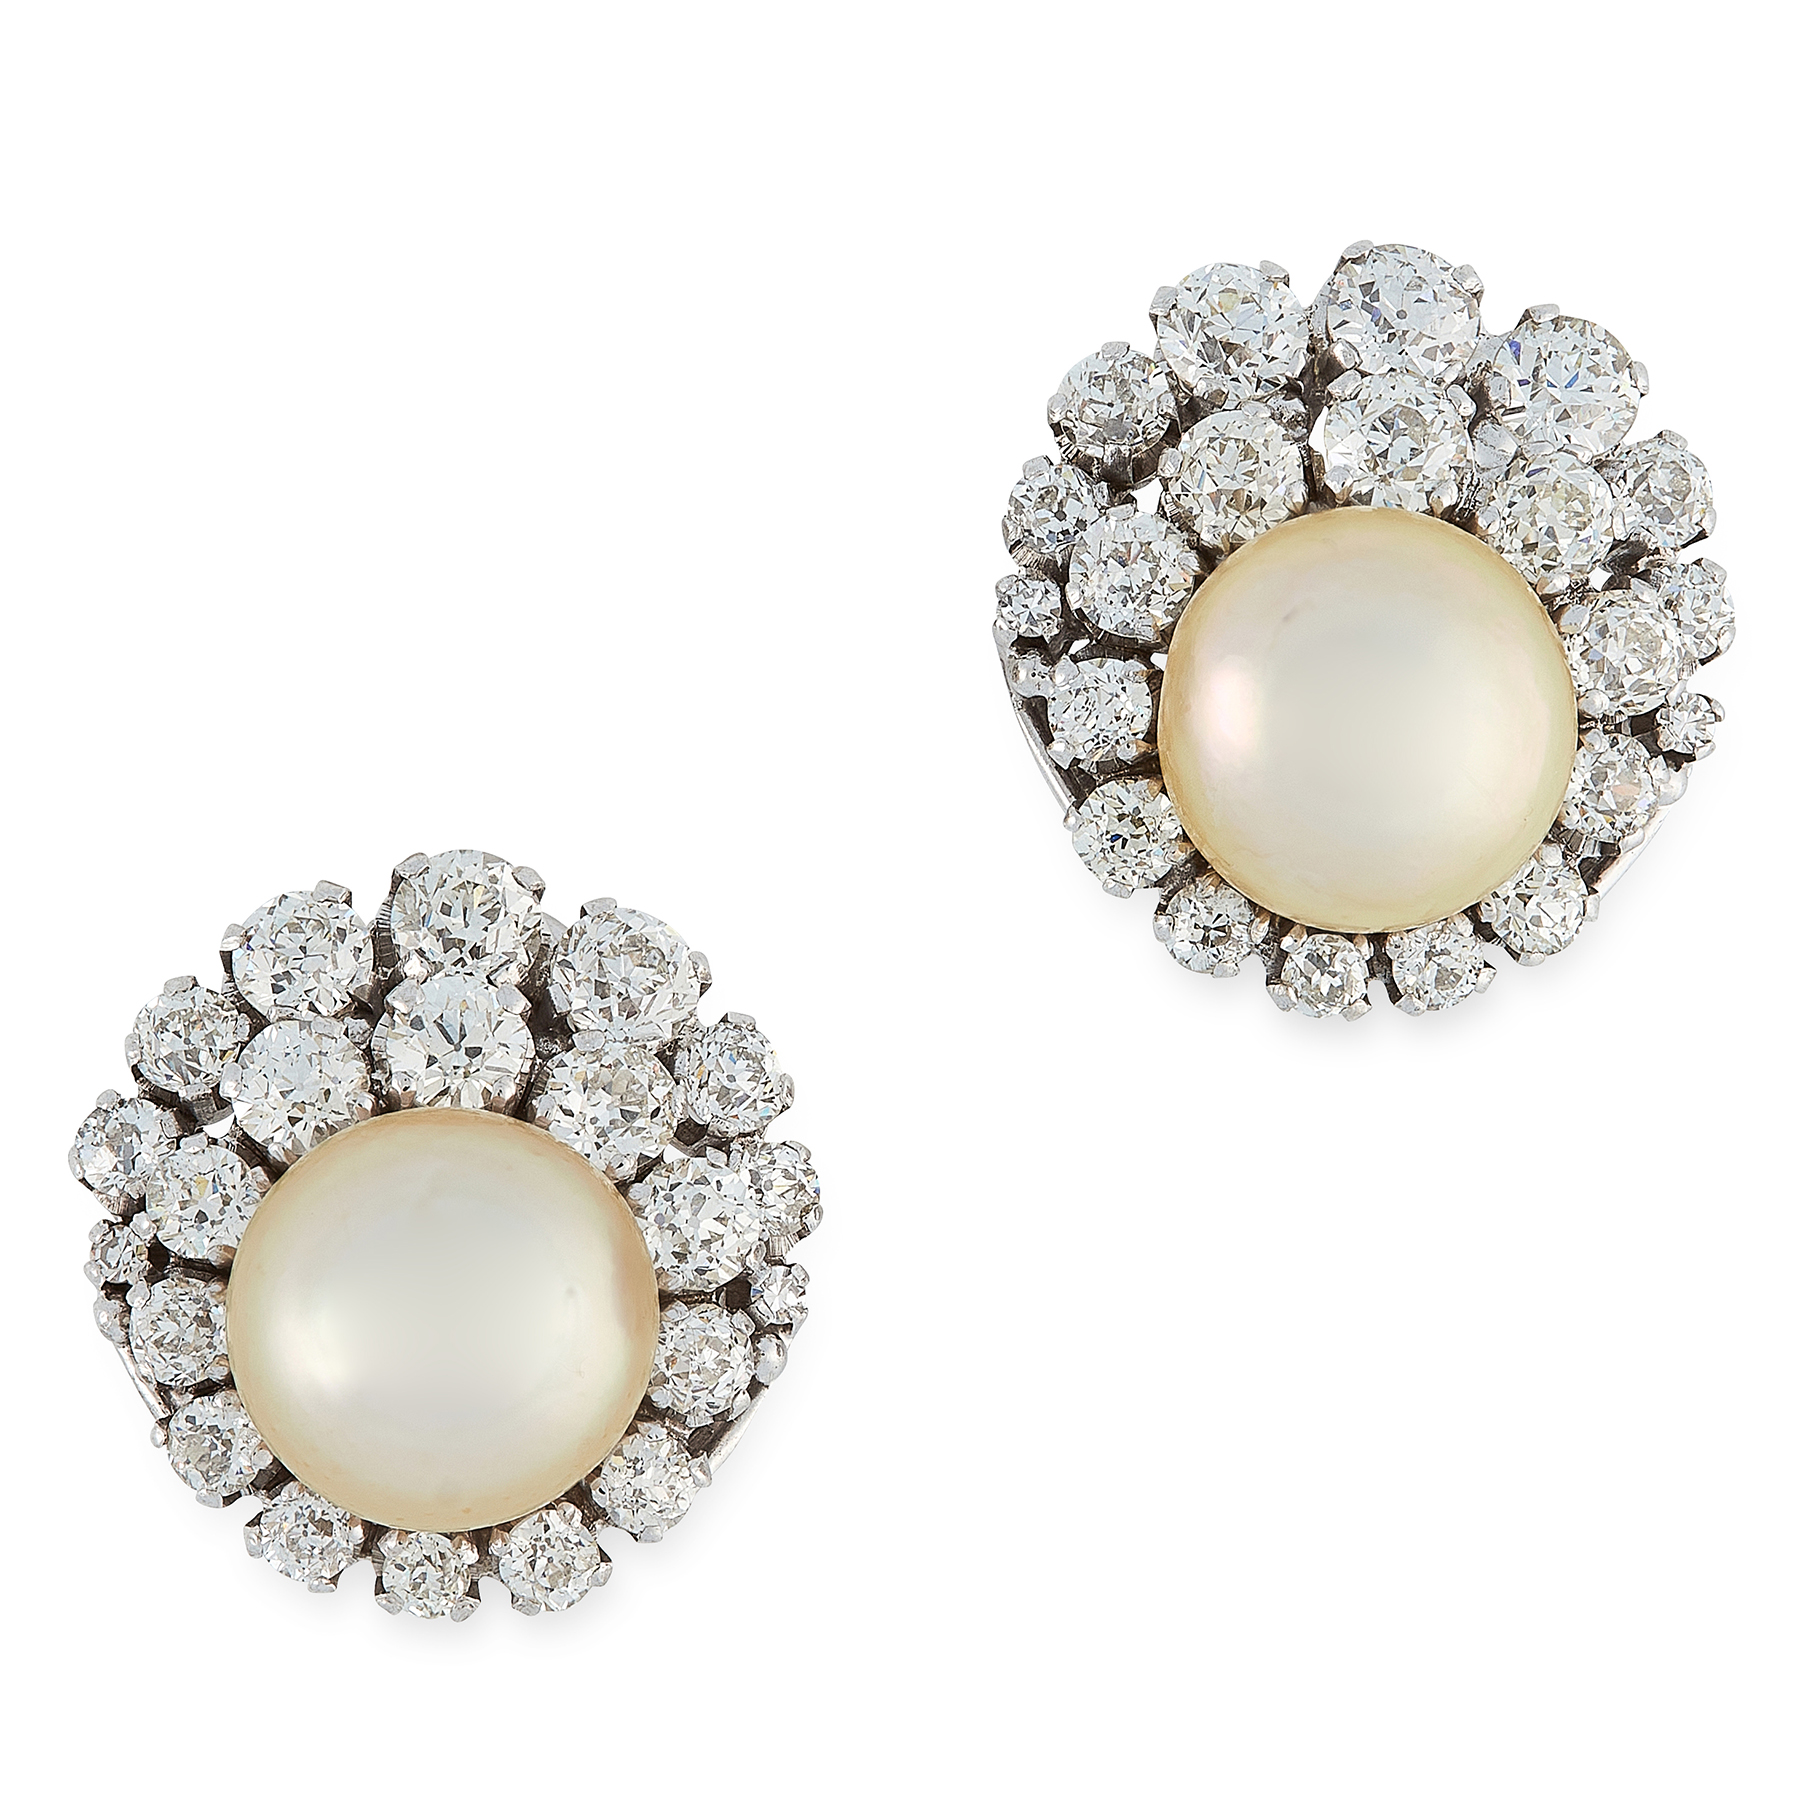 A PAIR OF NATURAL PEARL AND DIAMOND EARRINGS in 18ct white gold each set with a pearl of 11.3 and